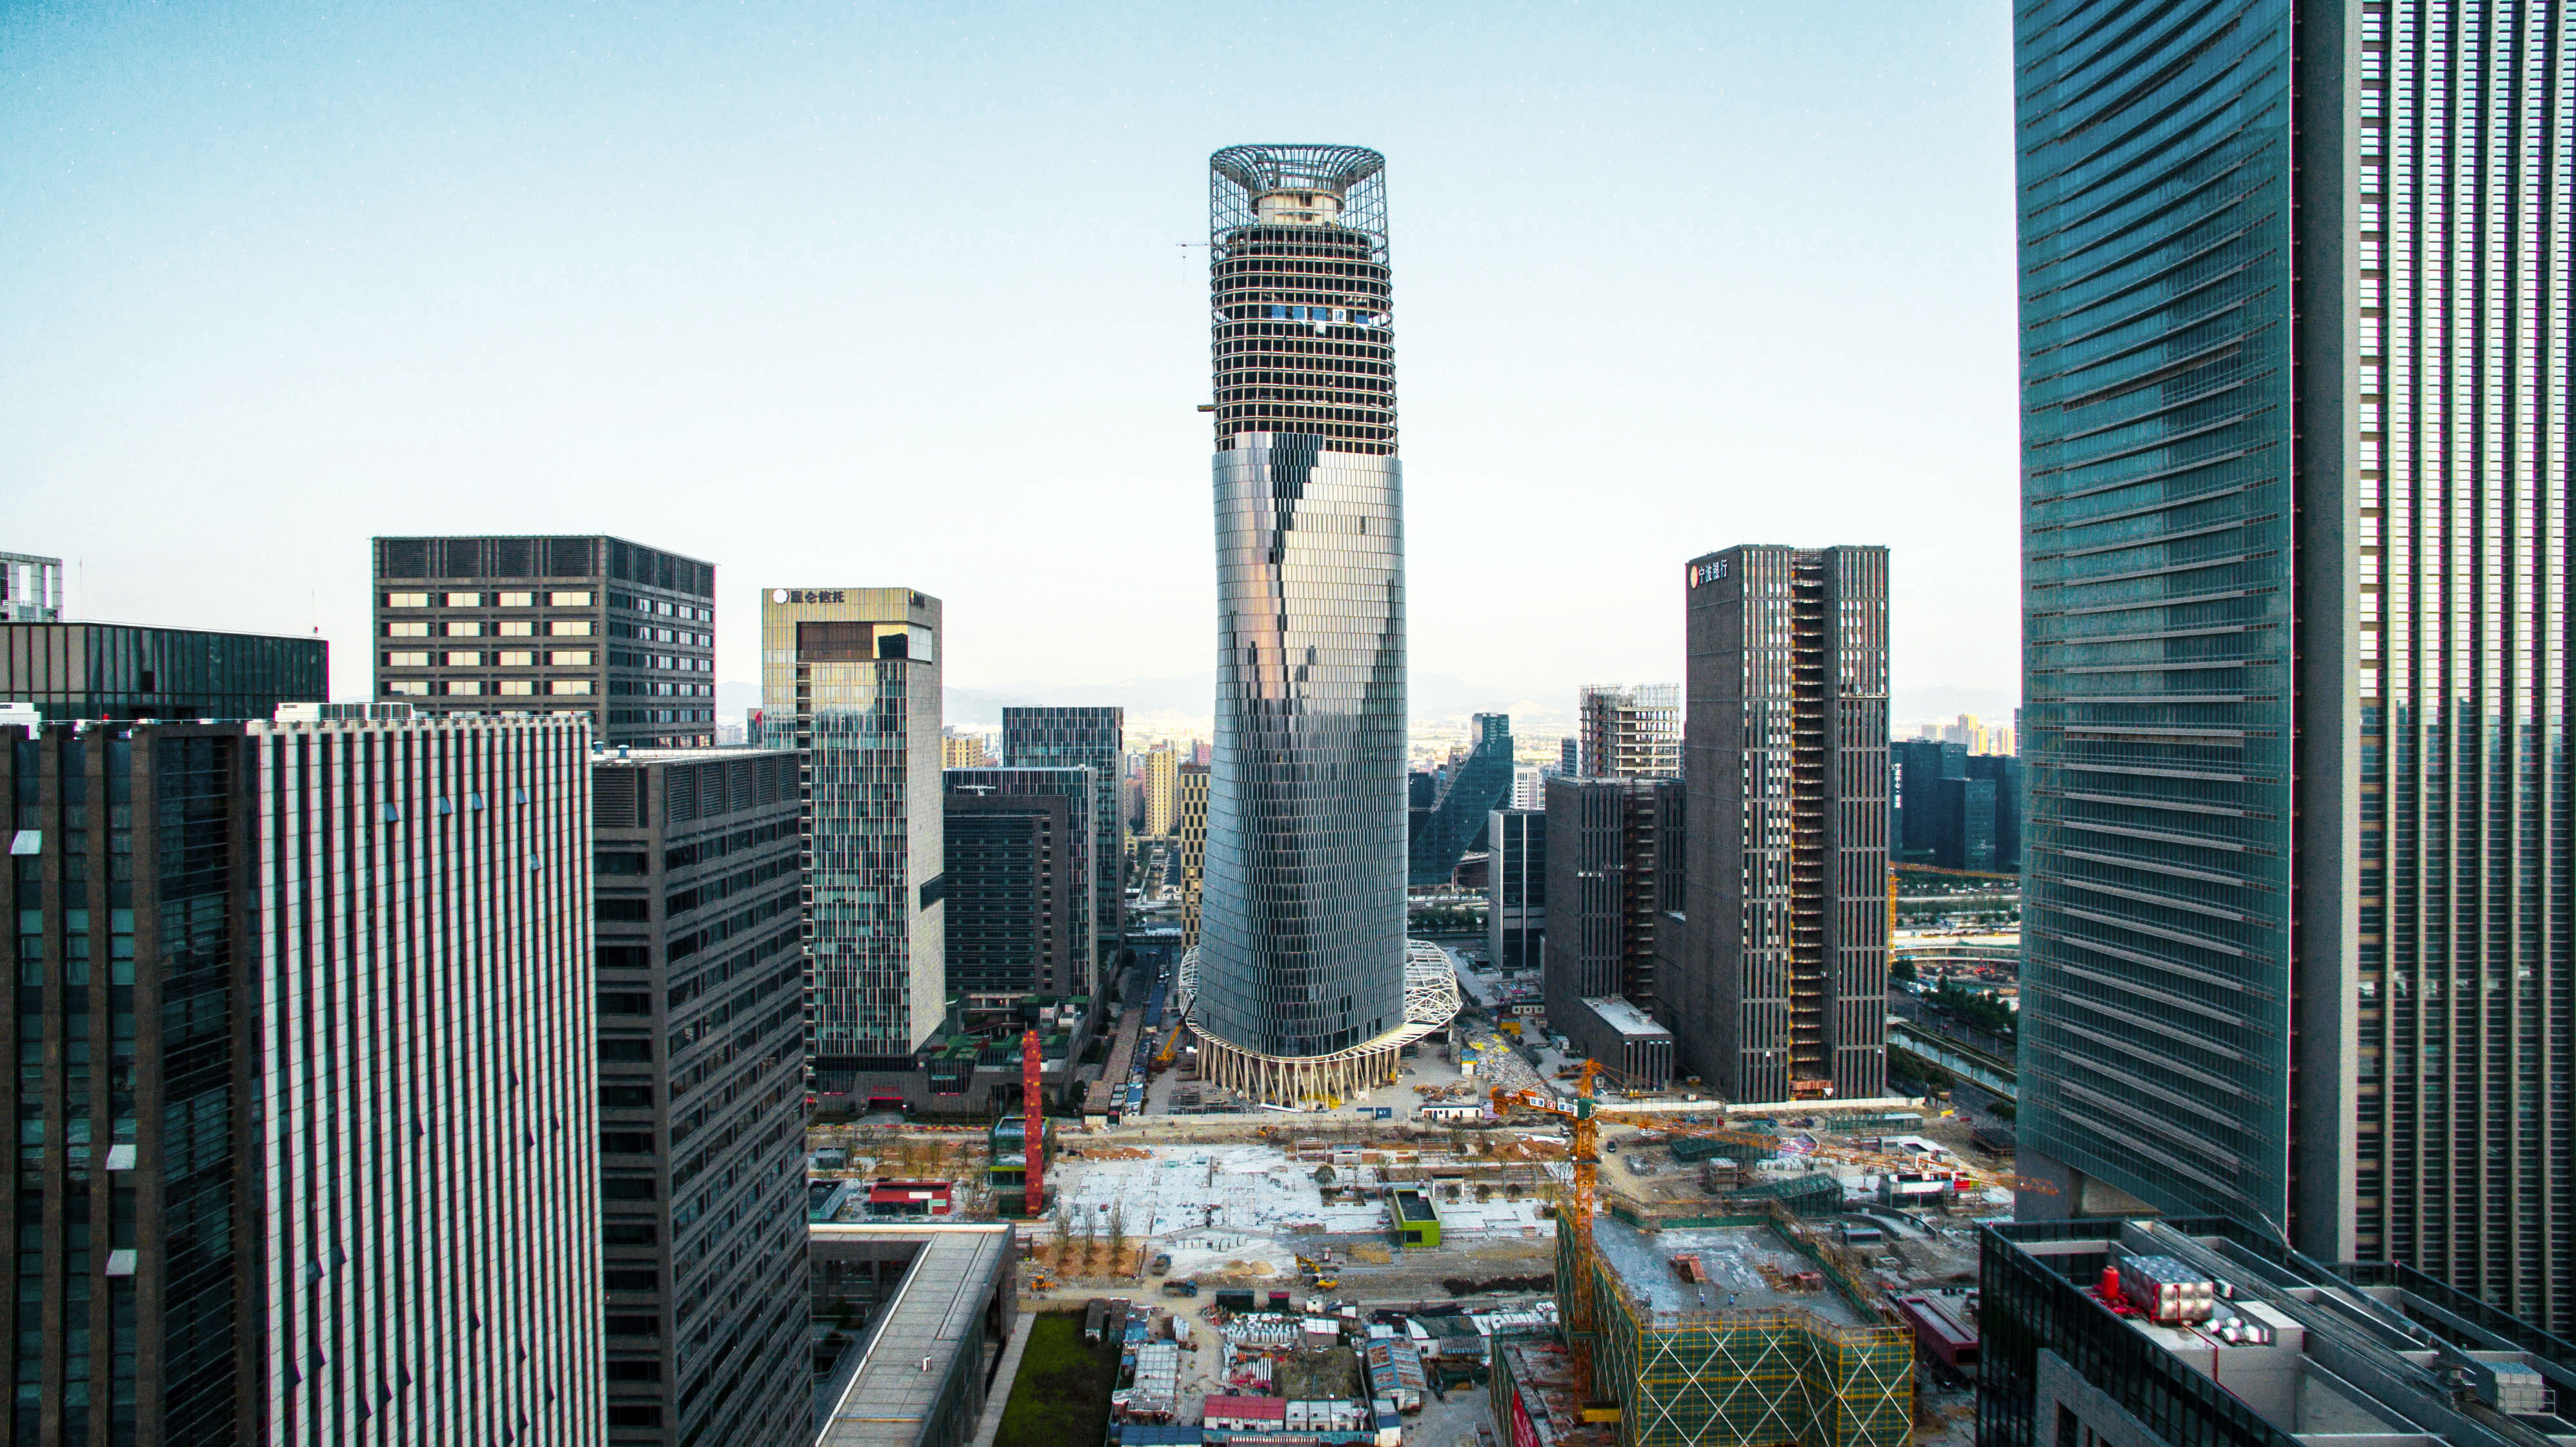 One Chinese city built more skyscrapers in 2016 than the entire U.S. - Curbed